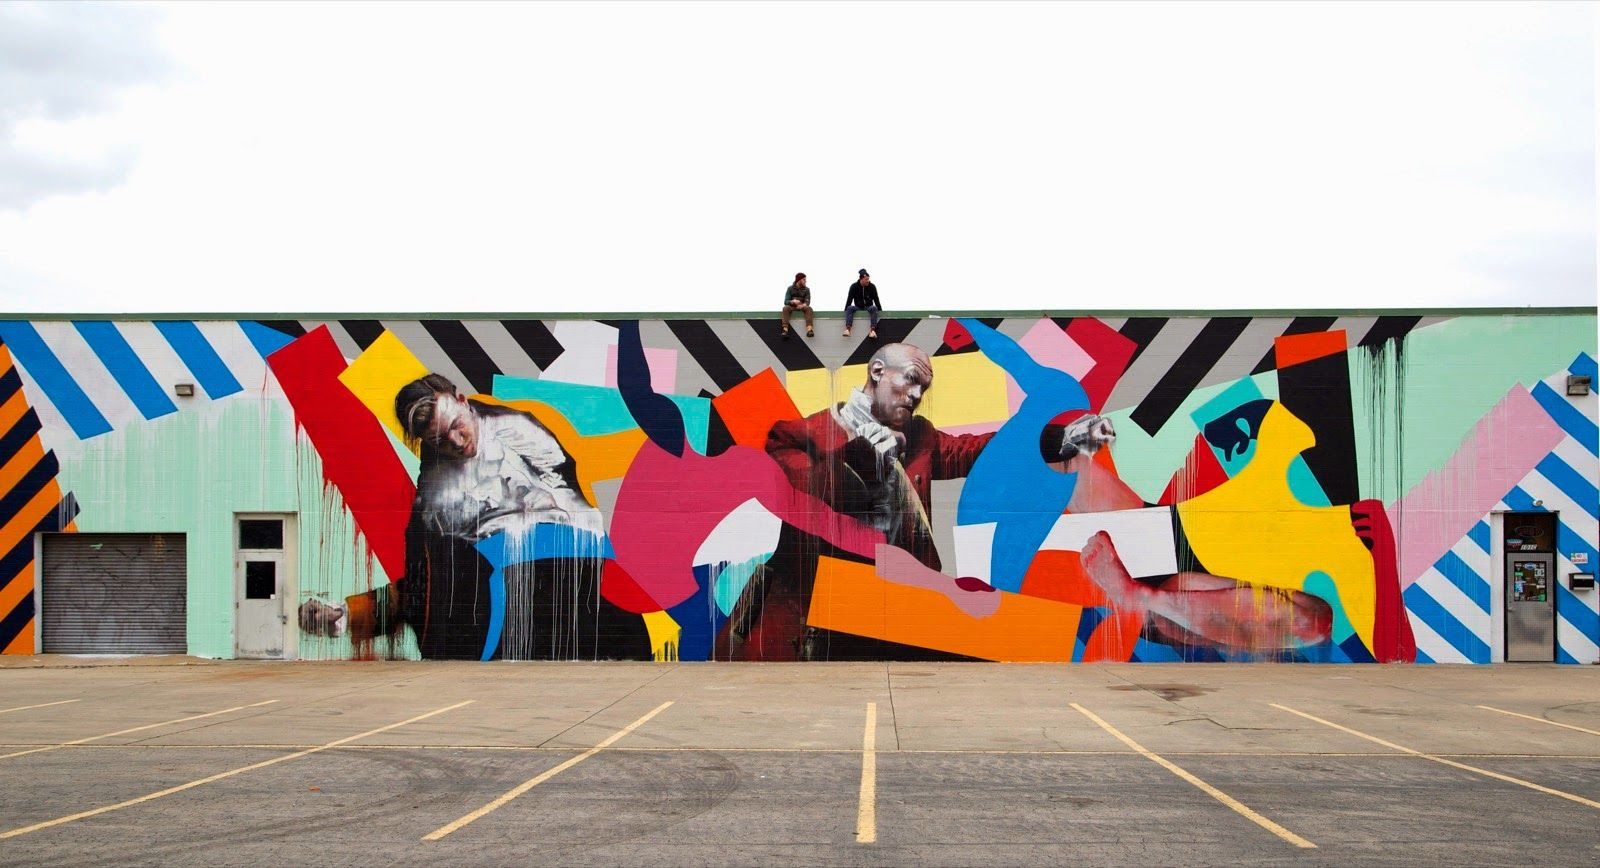 conor harrington and maser collaborate on a new mural in fort smith